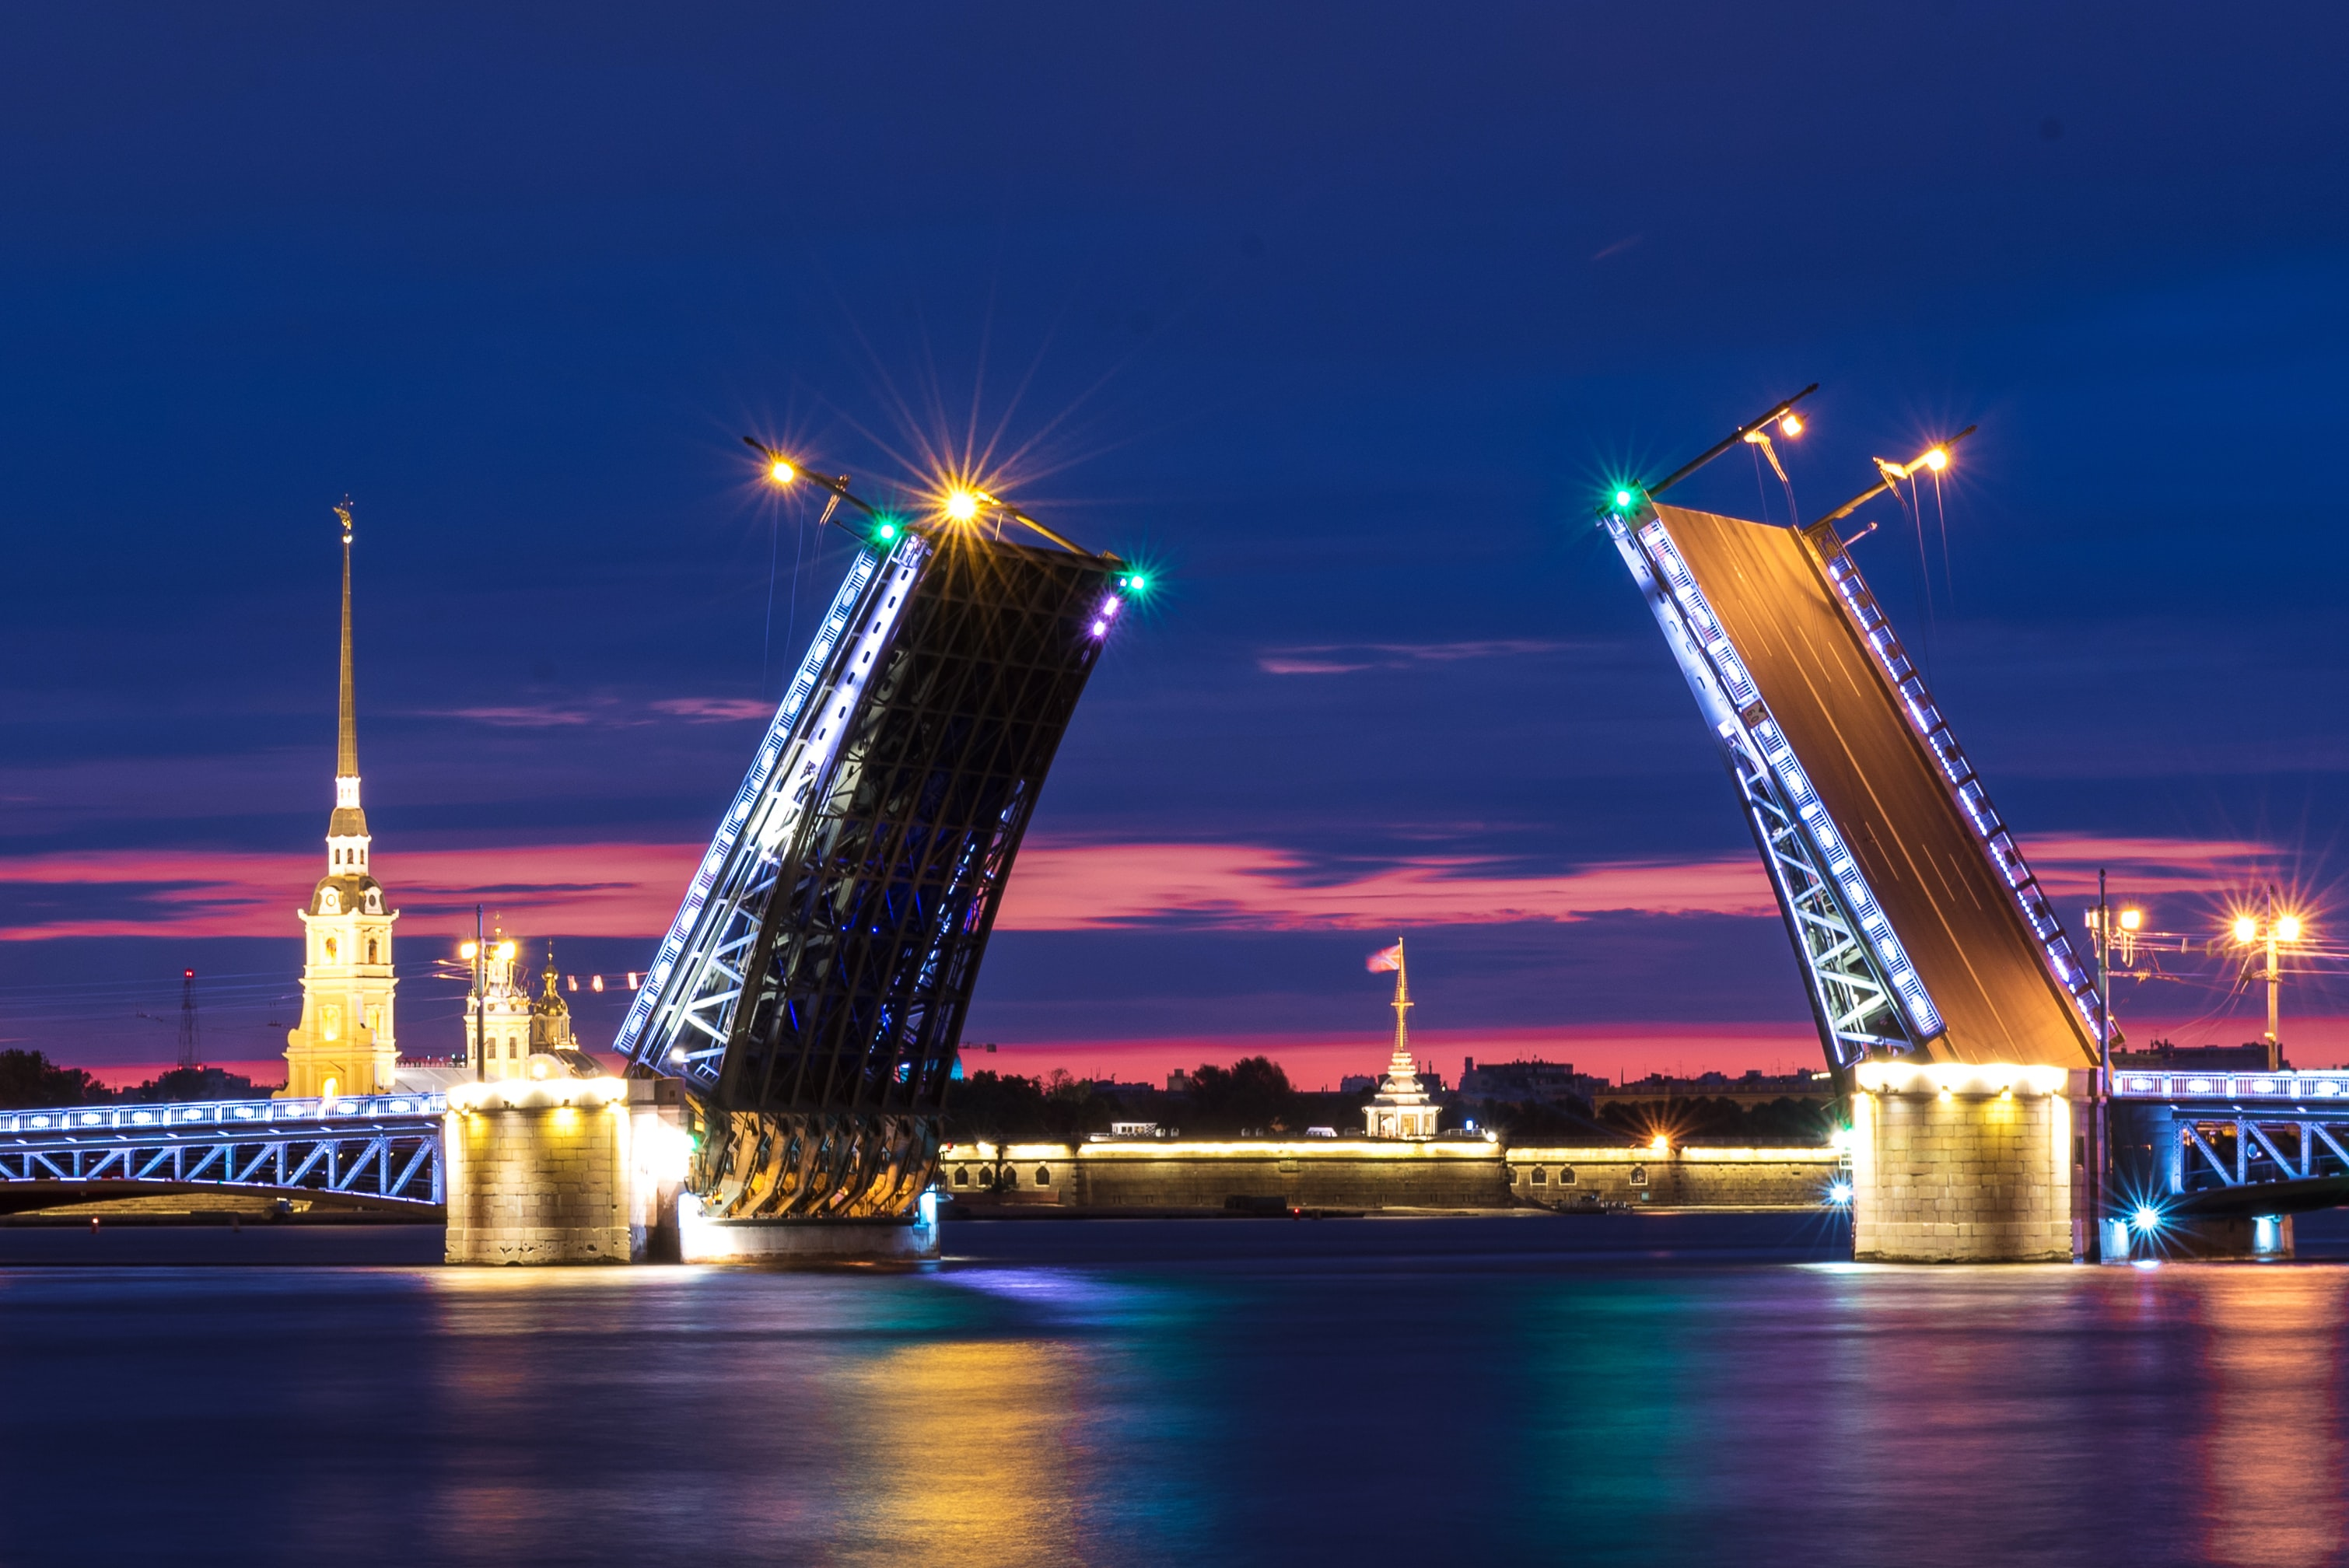 Night Time View Of St. Petersburg City - Best Places To Visit In St. Petersburg